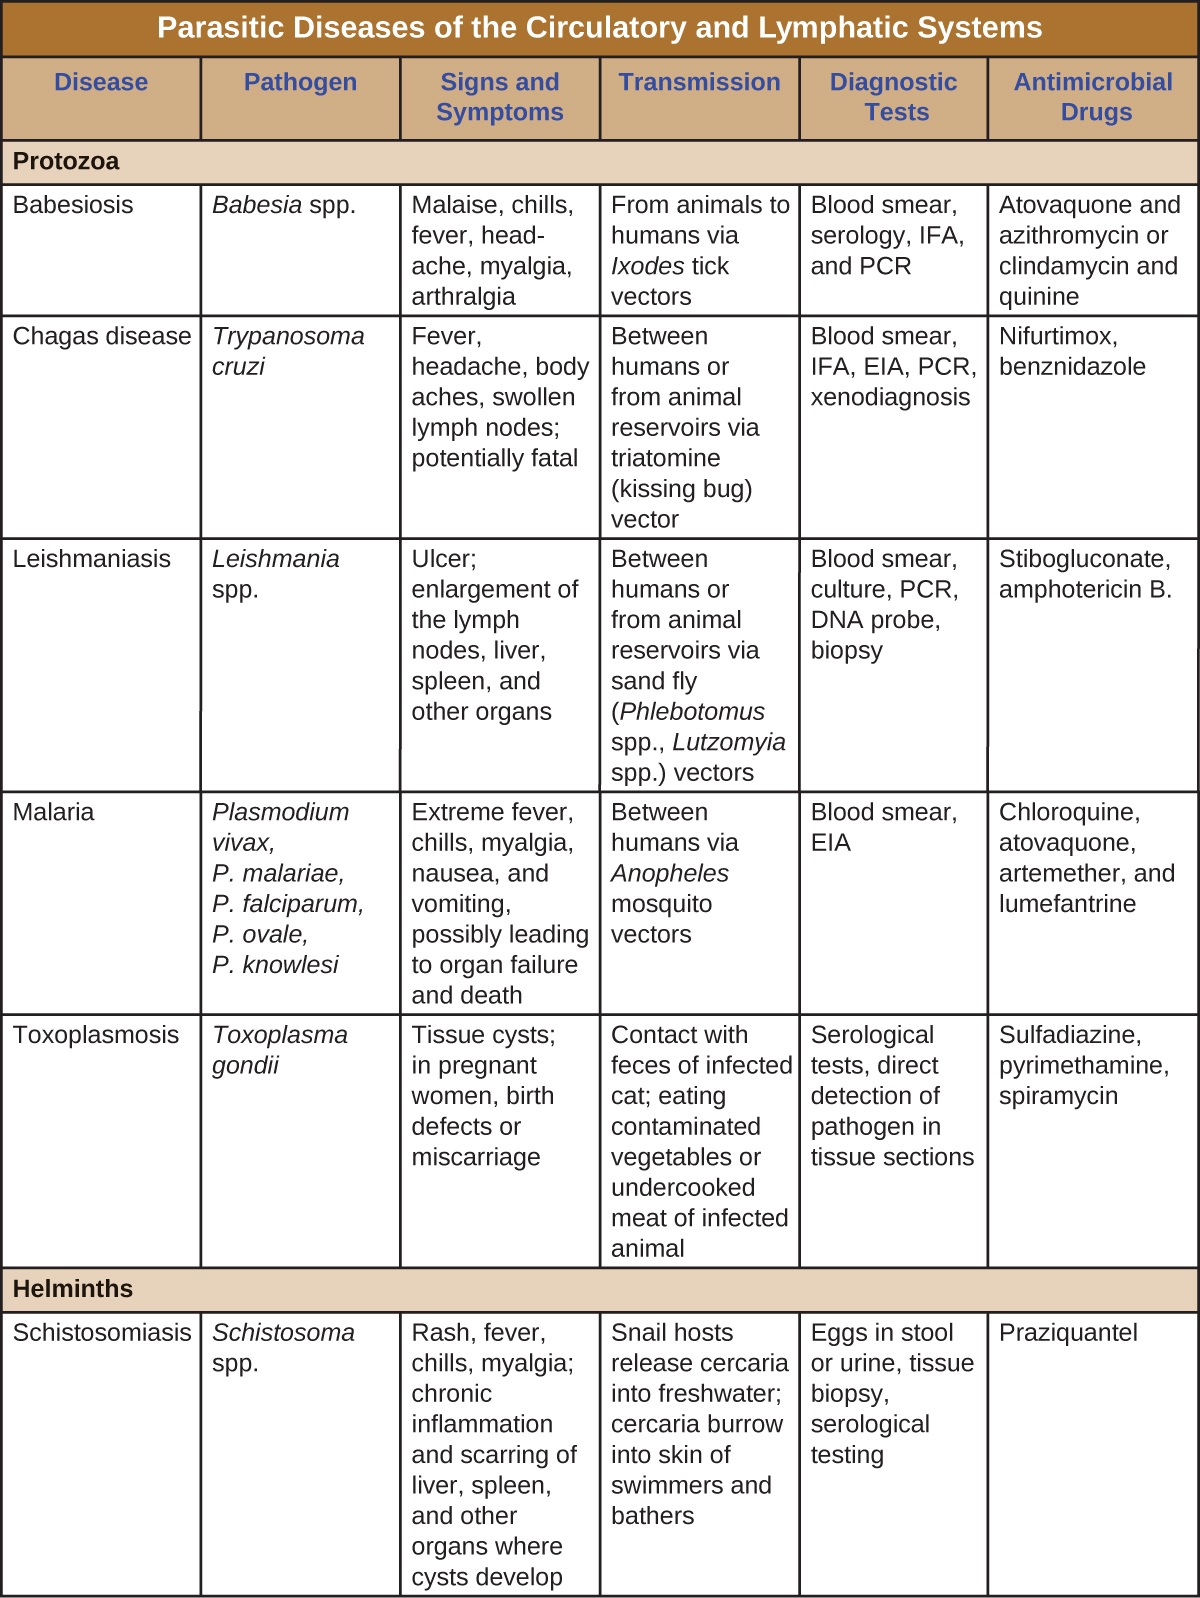 Table titled: Parasitic Diseases of the Circulatory and Lymphatic Systems. Columns: Disease, Pathogen, Signs and Symptoms, Transmission, Diagnostic Tests, Antimicrobial Drugs, Protozoa. Babesiosis; Babesia spp.; Malaise, chills, fever, headache, myalgia, arthralgia; From animals to humans via Ixodes tick vectors; Blood smear, serology, IFA, and PCR; Atovaquone and azithromycin or clindamycin and quinine. Chagas disease ; Trypanosoma cruzi; Fever, headache, body aches, swollen lymph nodes; potentially fatal; Between humans or from animal reservoirs via triatomine (kissing bug) vector; Blood smear, IFA, EIA, PCR, xenodiagnoses; Nifurtimox, benznidazole. Leishmaniasis Leishmania spp.; Ulcer; enlargement of the lymph nodes, liver, spleen, and other organs; Between humans or from animal reservoirs via sand fly (Phlebotomus spp., Lutzomyia spp.) vectors; Blood smear, culture, PCR, DNA probe, biopsy; Stibogluconate, amphotericin B, miltefosine. Malaria; Plasmodium vivax, P. malariae, P. falciparum, P. ovale, P. knowlesi; Extreme fever, chills, myalgia, nausea, and vomiting, possibly leading to organ failure and death; Between humans via Anopheles mosquito vectors; Blood smear, EIA; Chloroquine, atovaquone, artemether, and lumefantrine. Toxoplasmosis Toxoplasma gondii; Tissue cysts; in pregnant women, birth defects or miscarriage; Contact with feces of infected cat; eating contaminated vegetables or undercooked meat of infected animal; Serological tests, direct detection of pathogen in tissue sections; Sulfadiazine, pyrimethamine, spiramycin; Helminths. Schistosomiasis; Schistosoma spp.; Rash, fever, chills, myalgia; chronic inflammation and scarring of liver, spleen, and other organs where cysts develop; Snail hosts release cercaria into freshwater; cercaria burrow into skin of swimmers and bathers; Eggs in stool or urine, tissue biopsy, serological testing; Praziquantel..